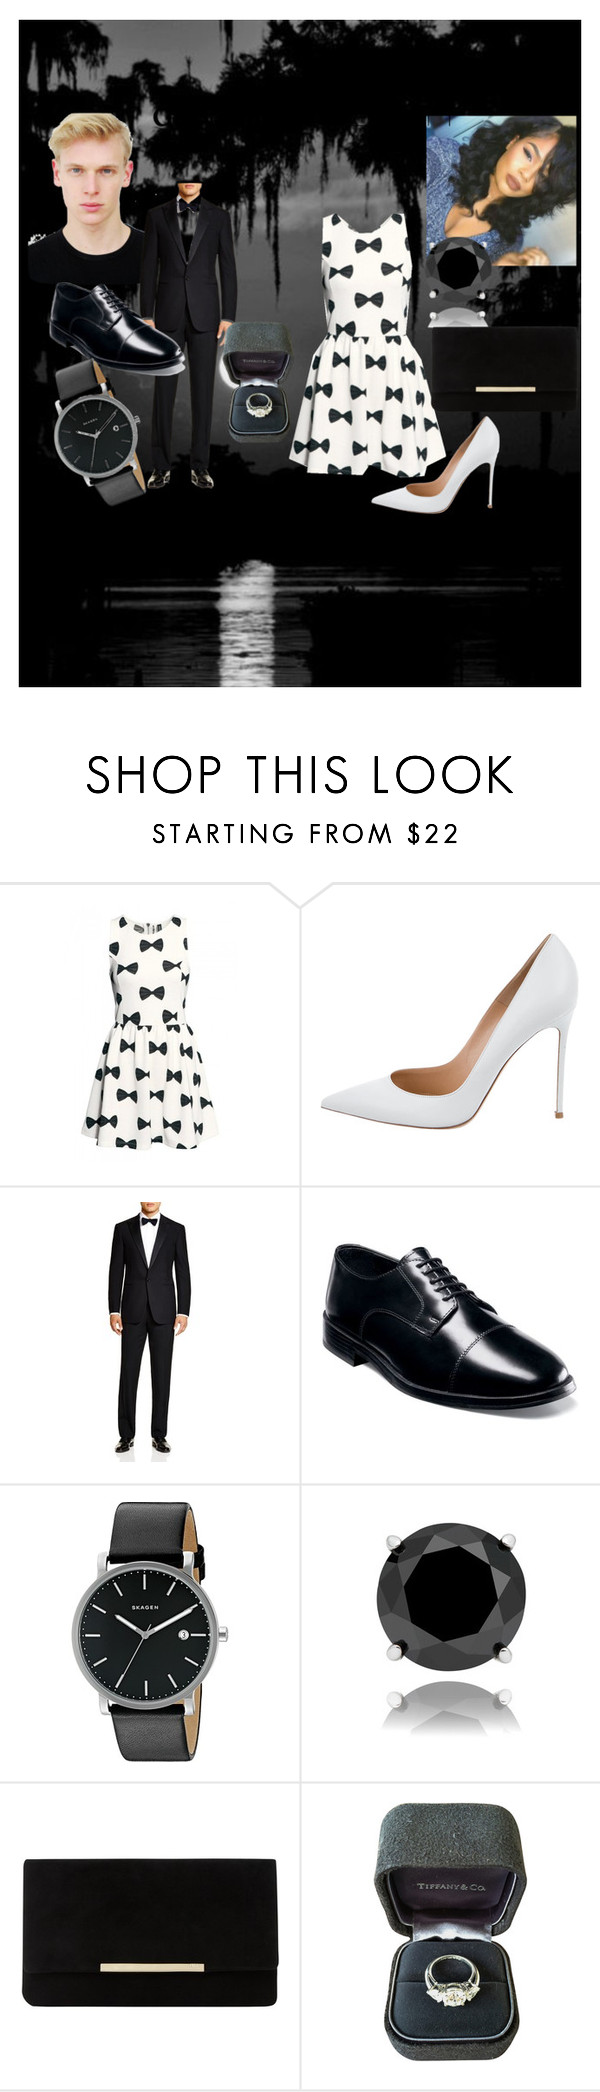 """Say Yes ?"" by myluluann on Polyvore featuring Gianvito Rossi, Ralph Lauren, Nunn Bush, Skagen, Finesque, Dune and Tiffany & Co."